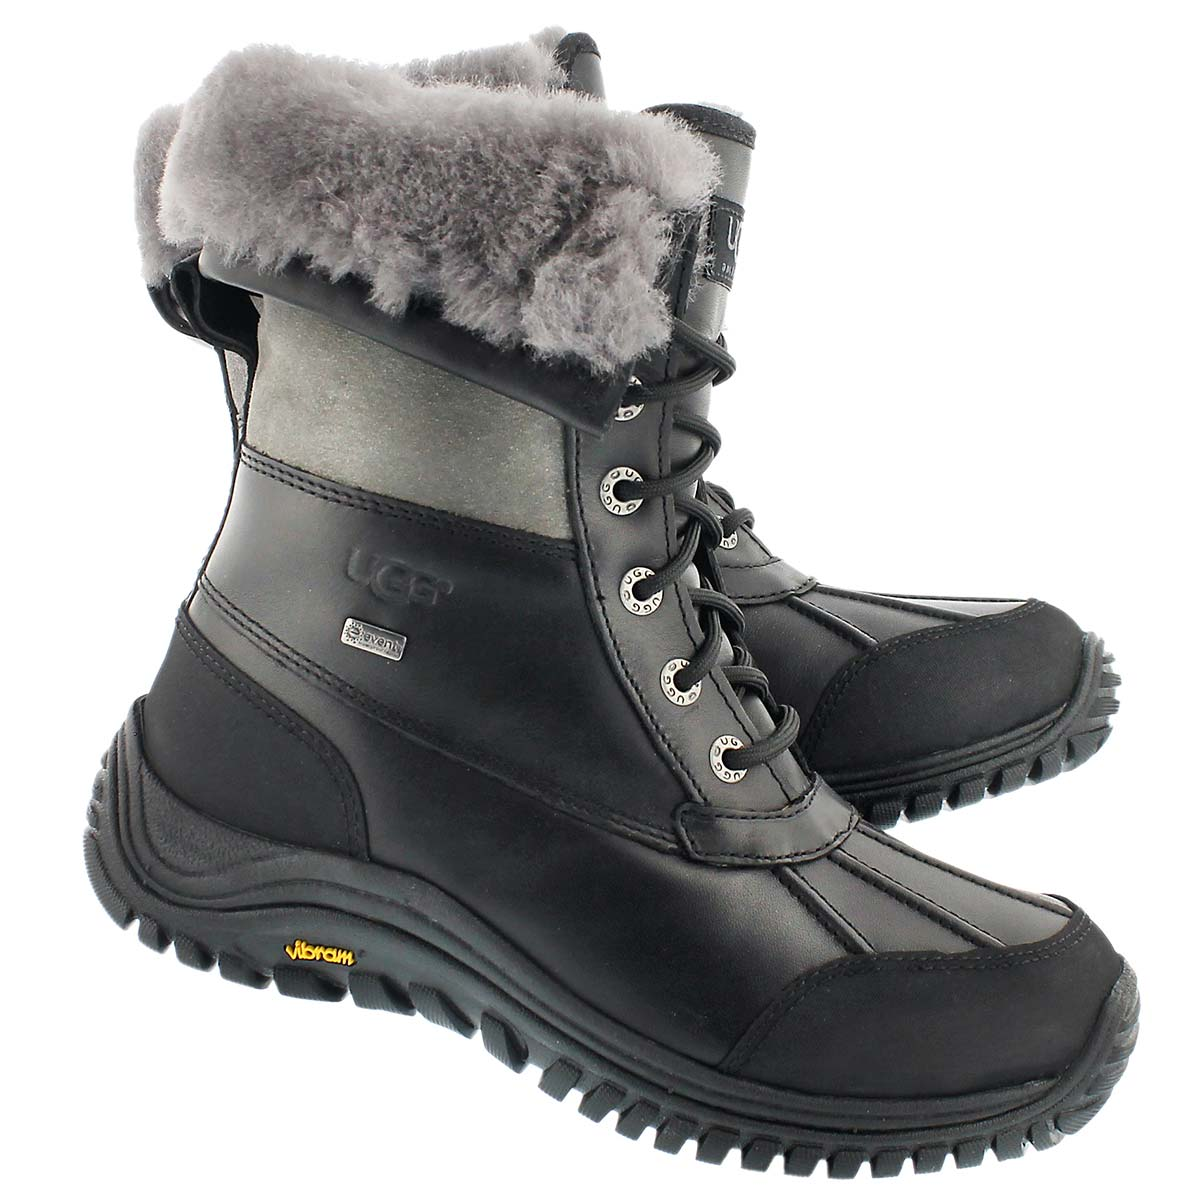 Lds Adirondack II blk/gry winter boot